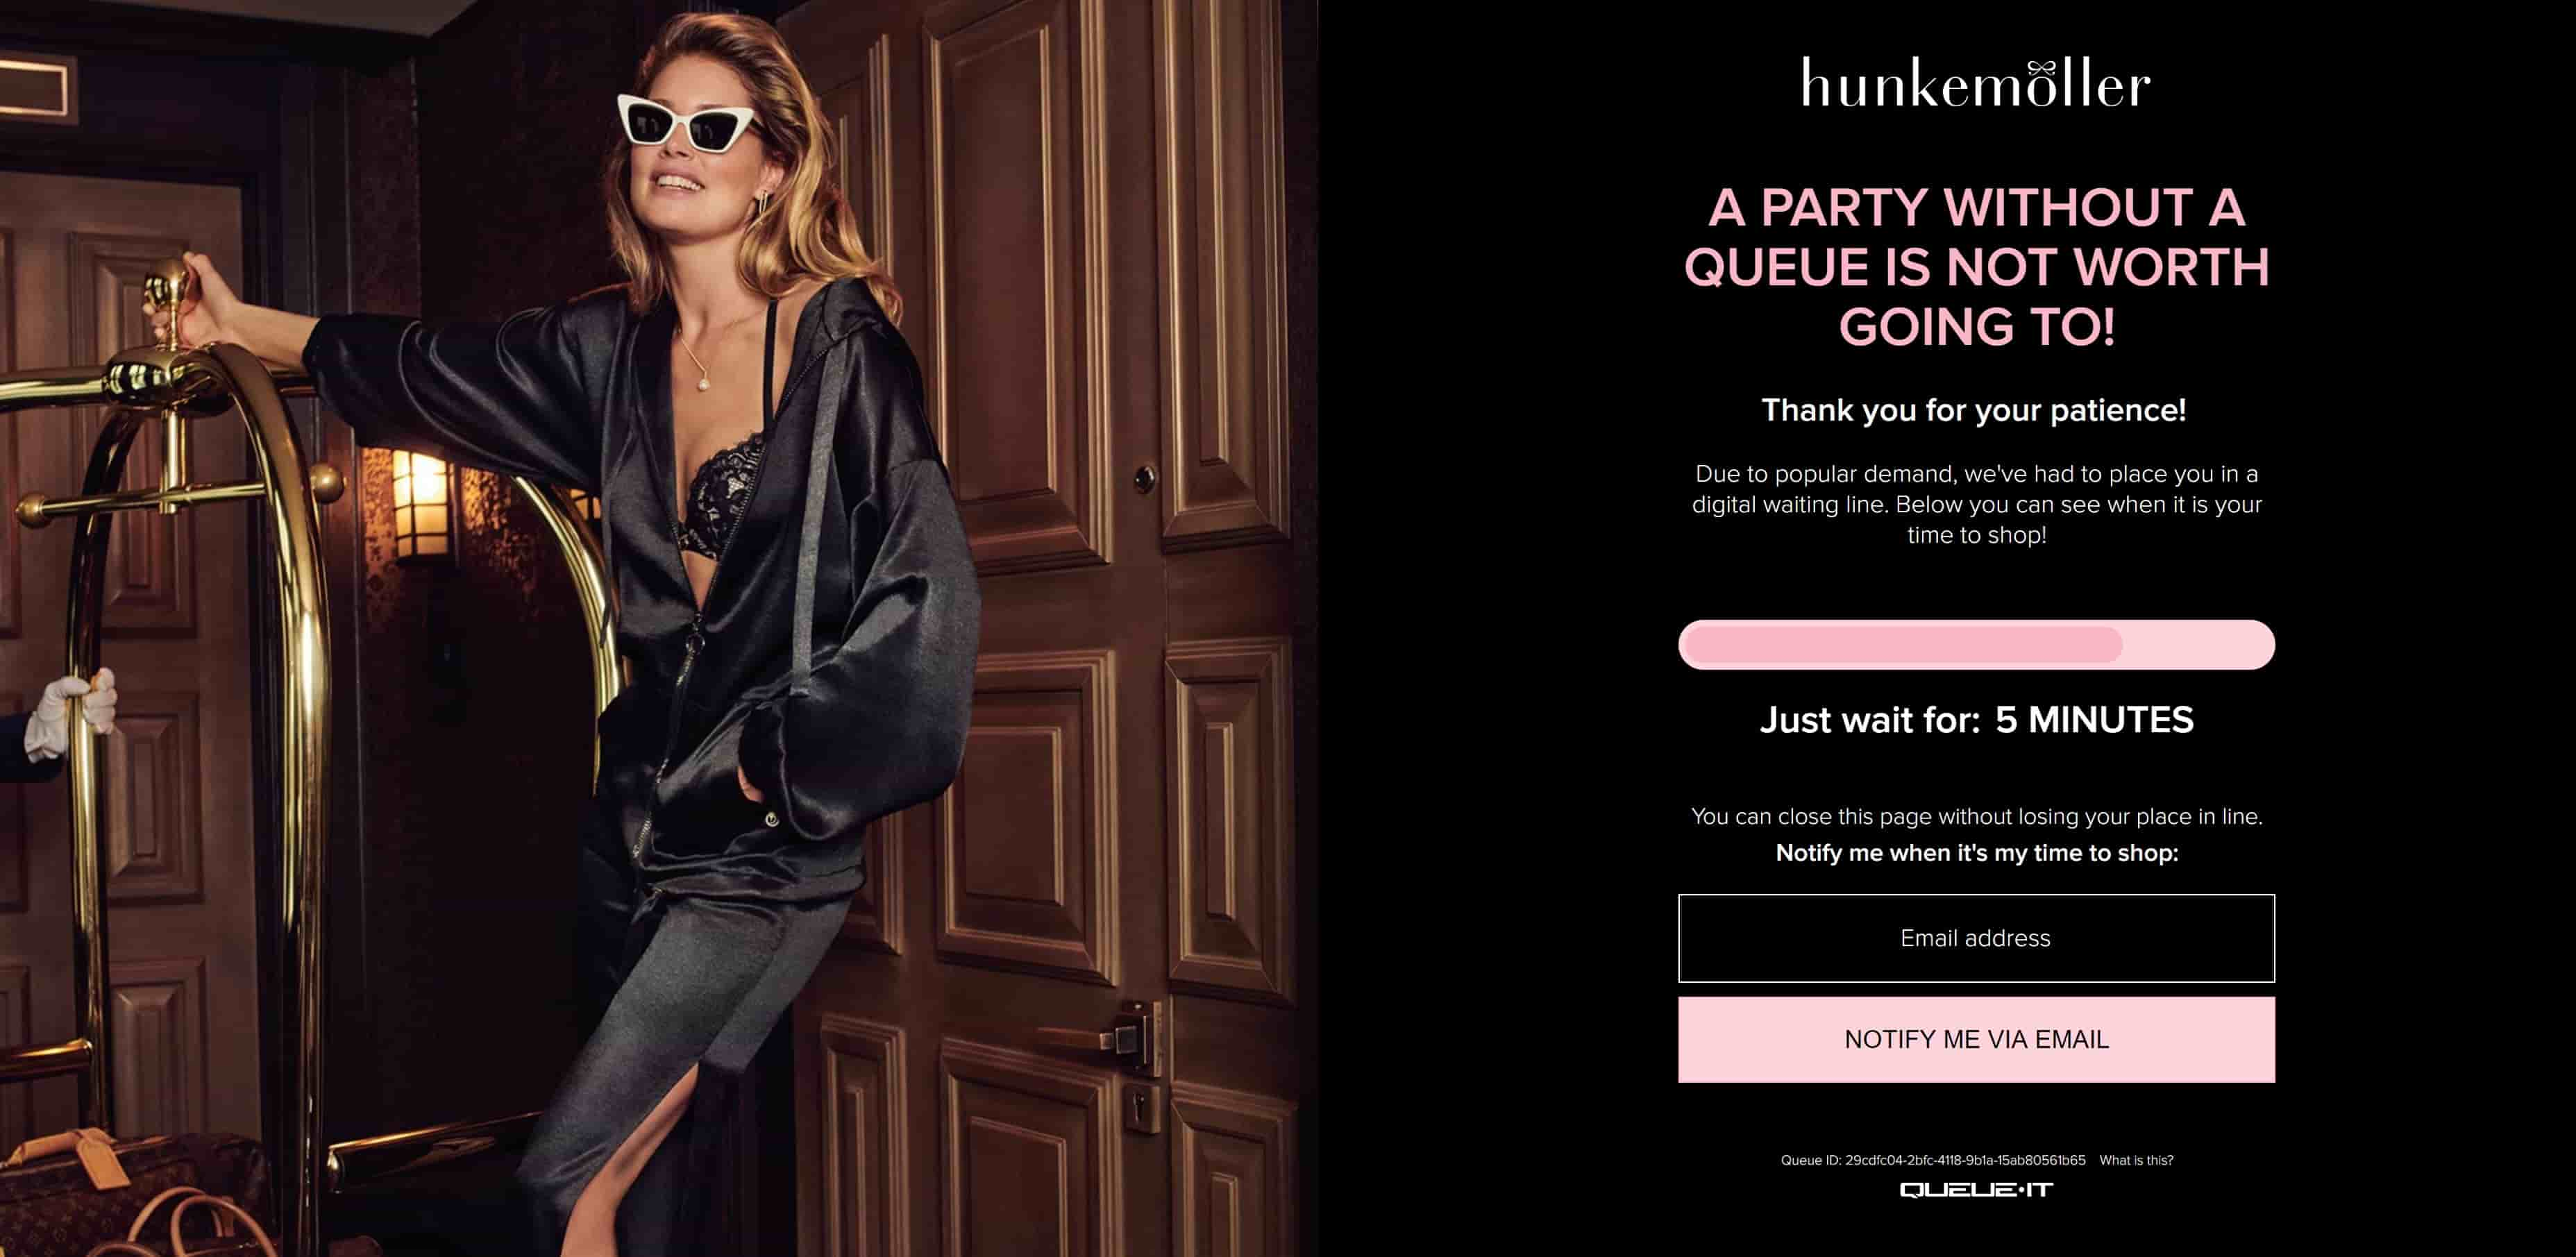 Queue page for Hunkemoller shows the bandwagon effect